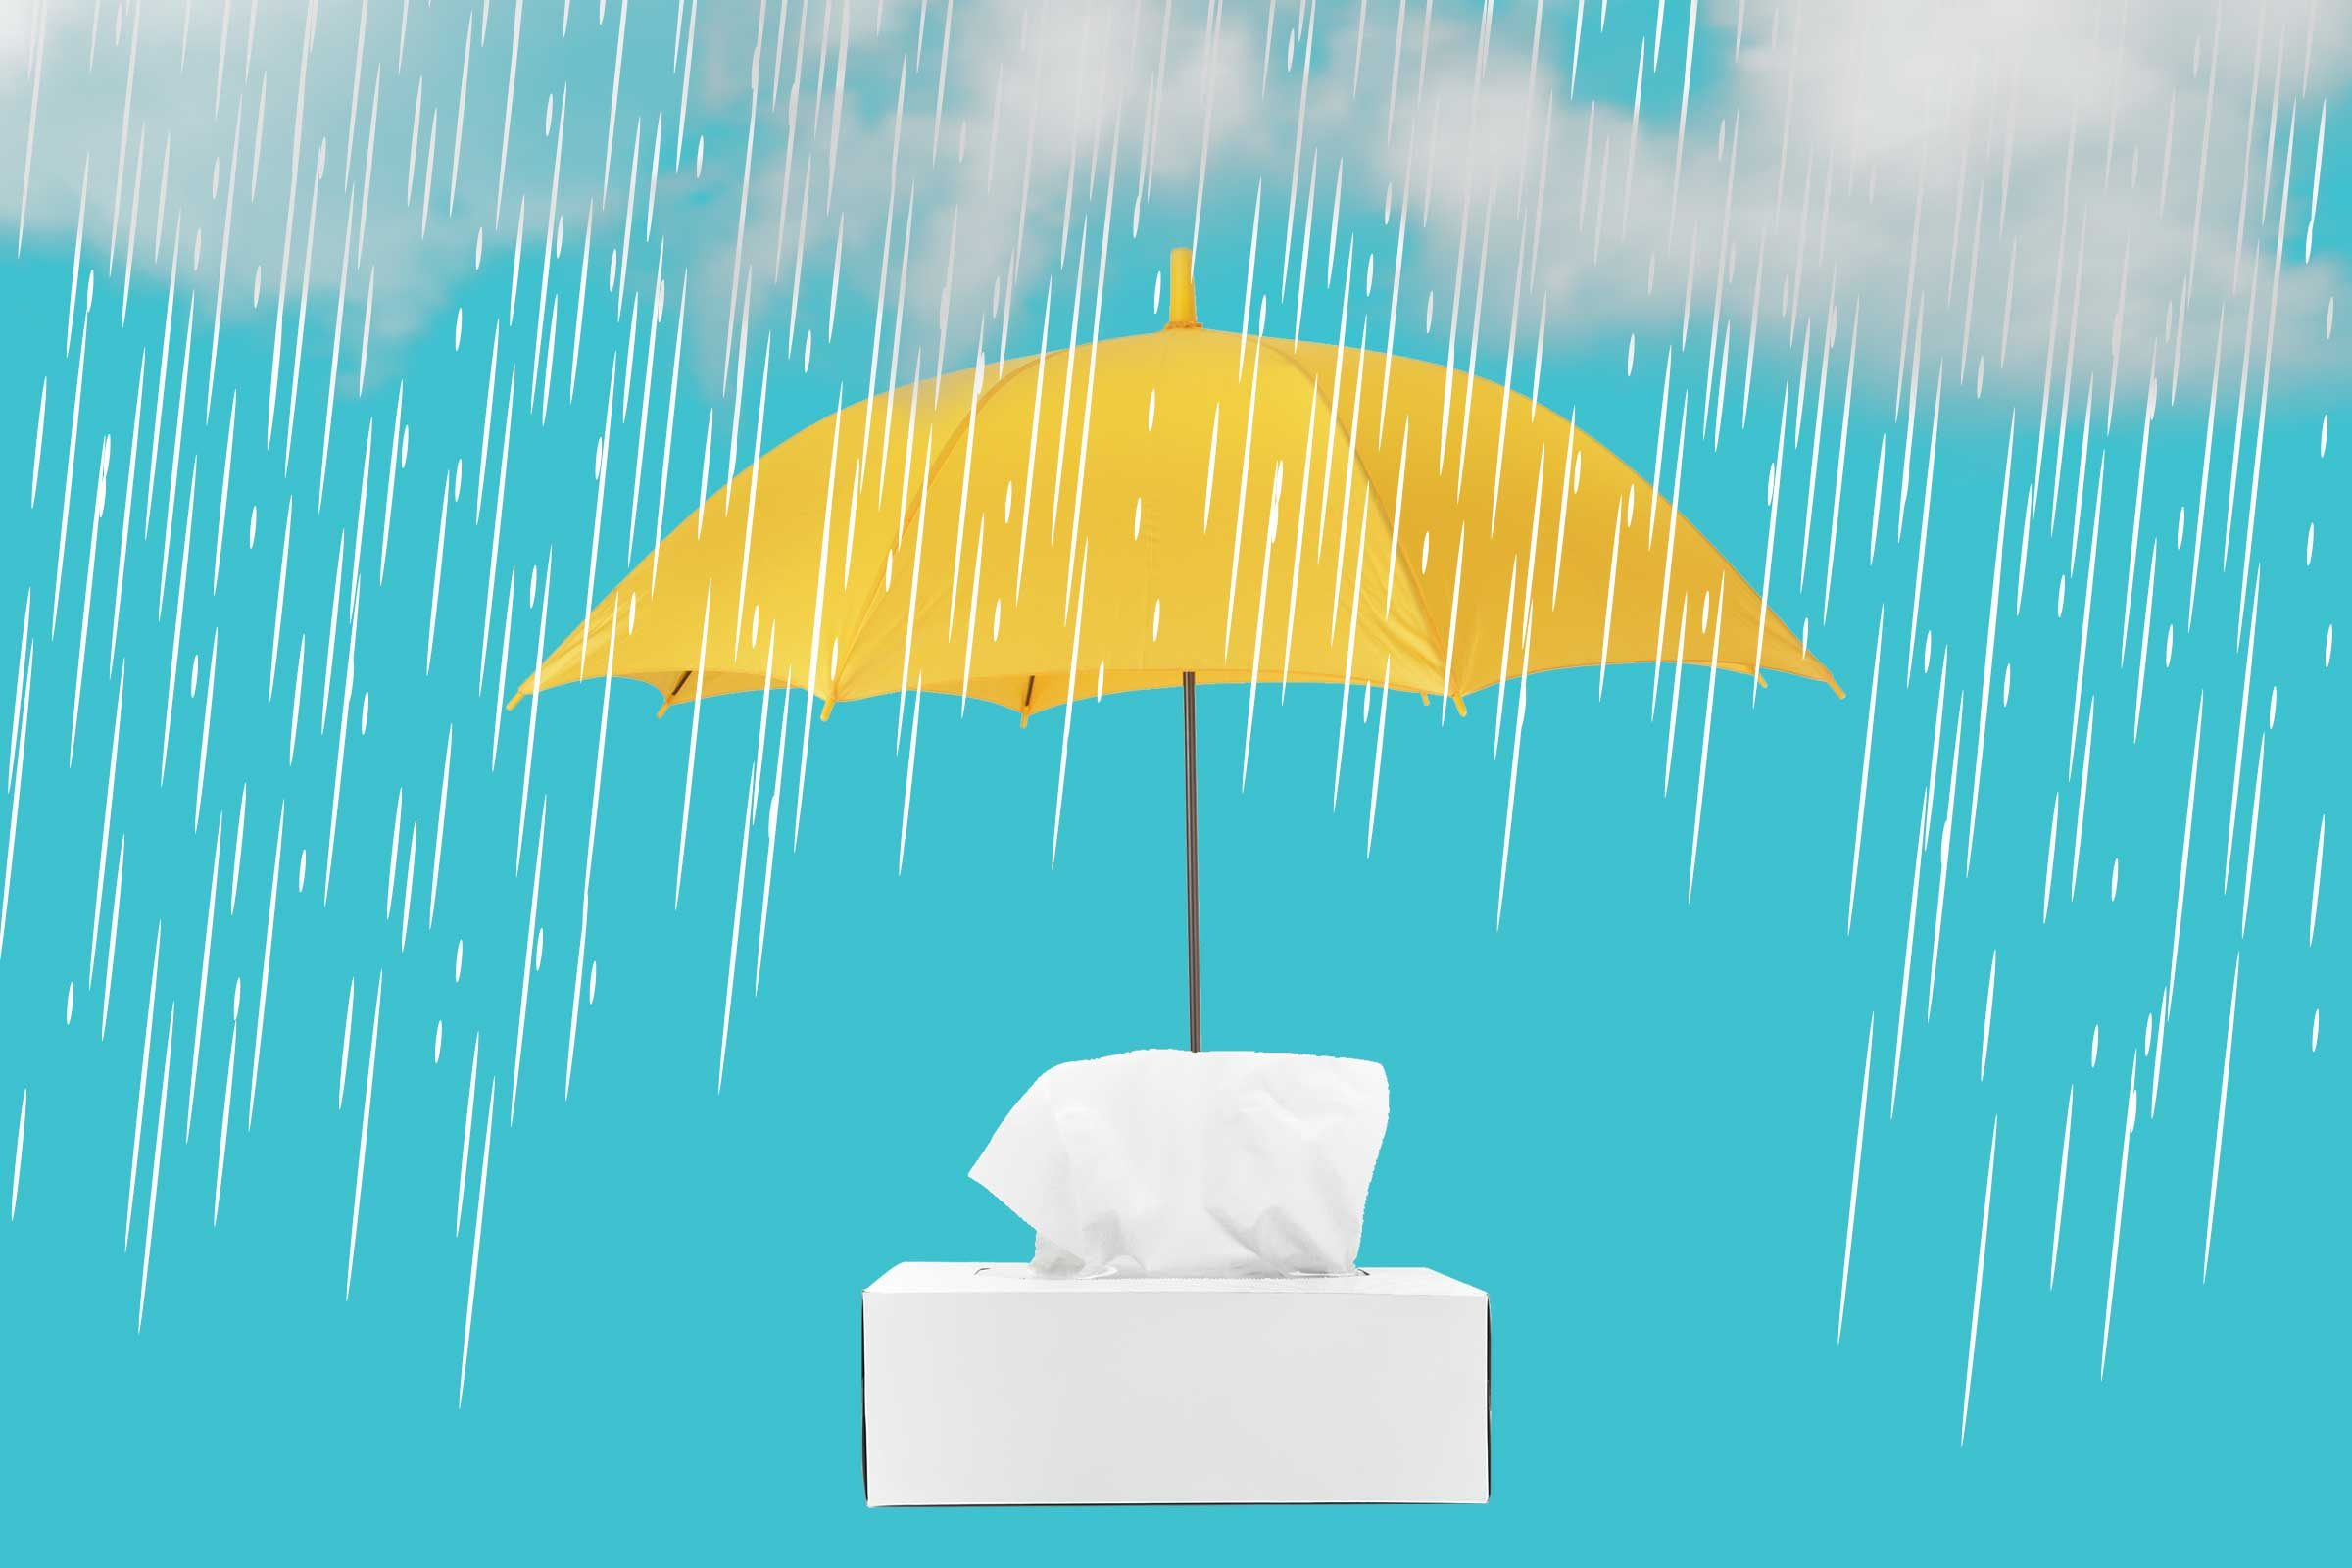 under the weather idiom